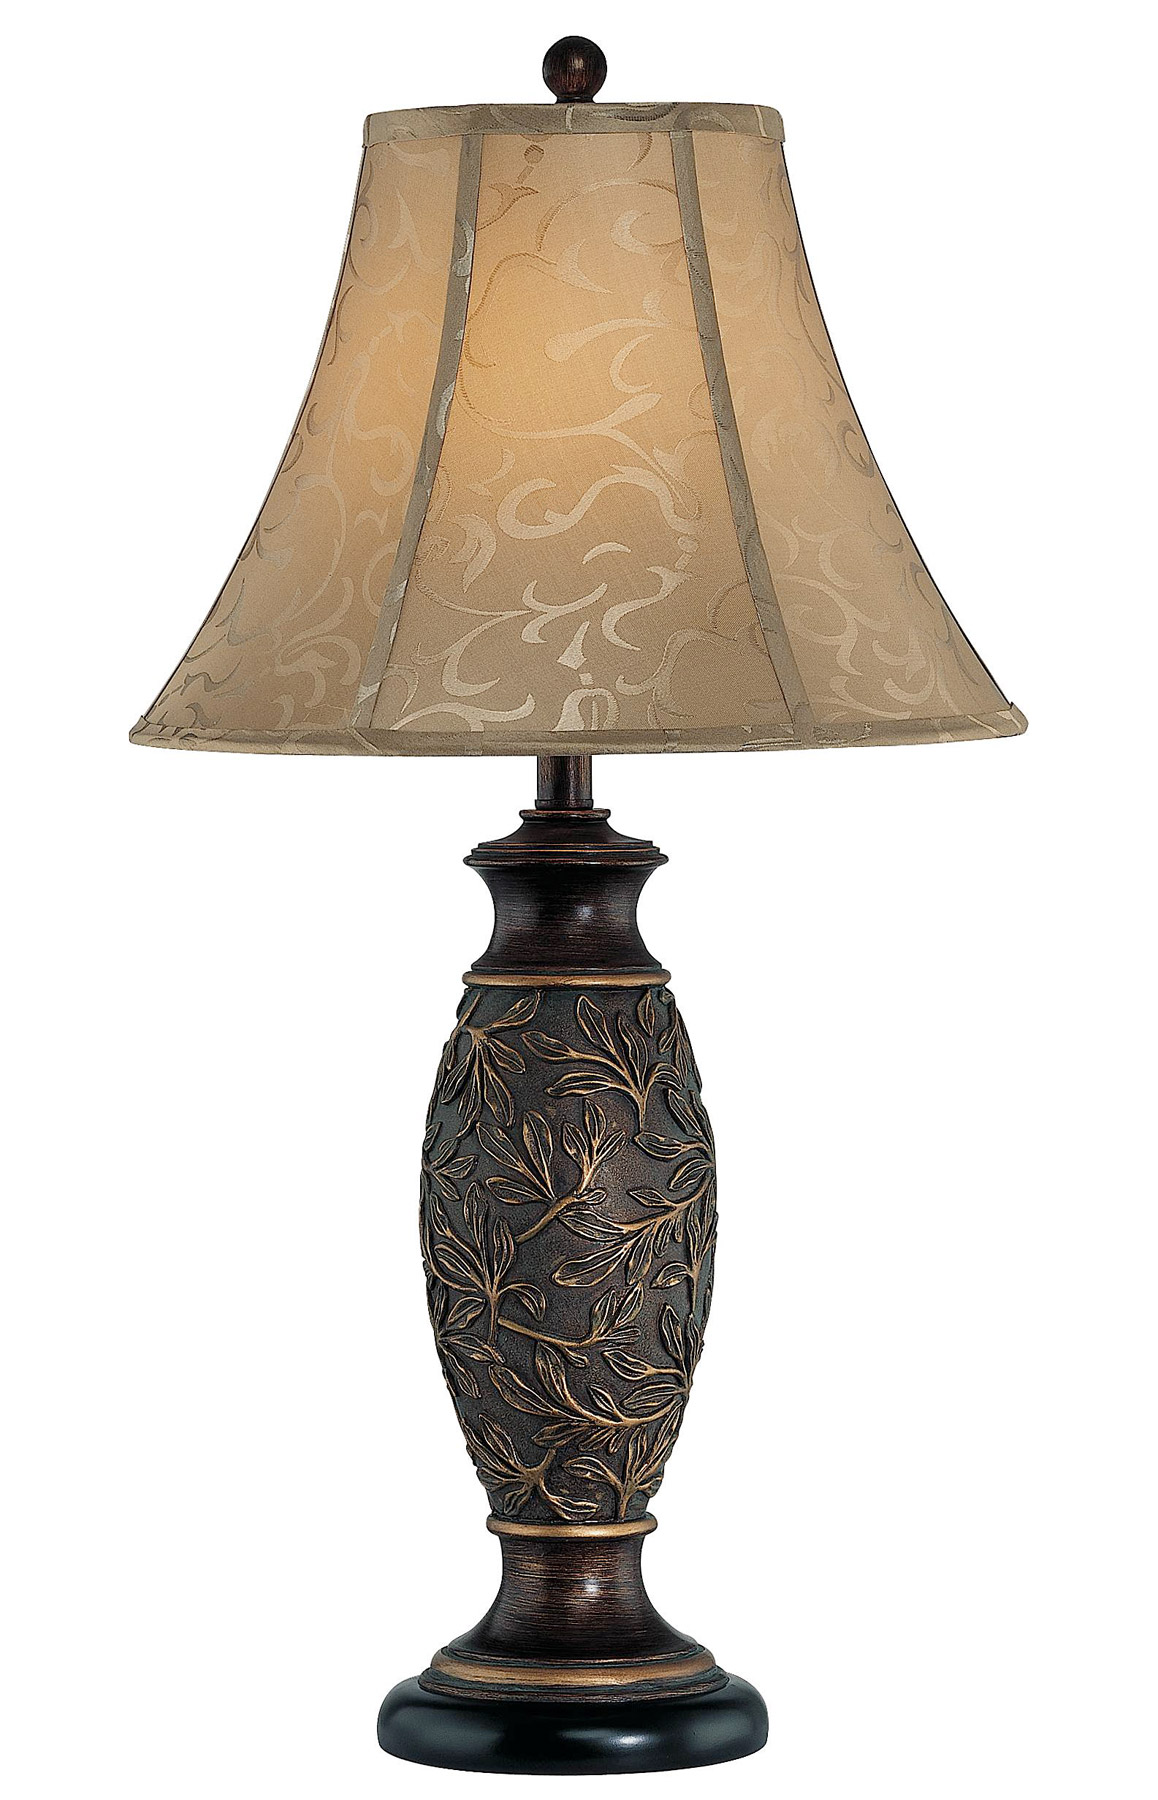 Lite source c41162 gentry table lamp - Chandelier desk lamp ...